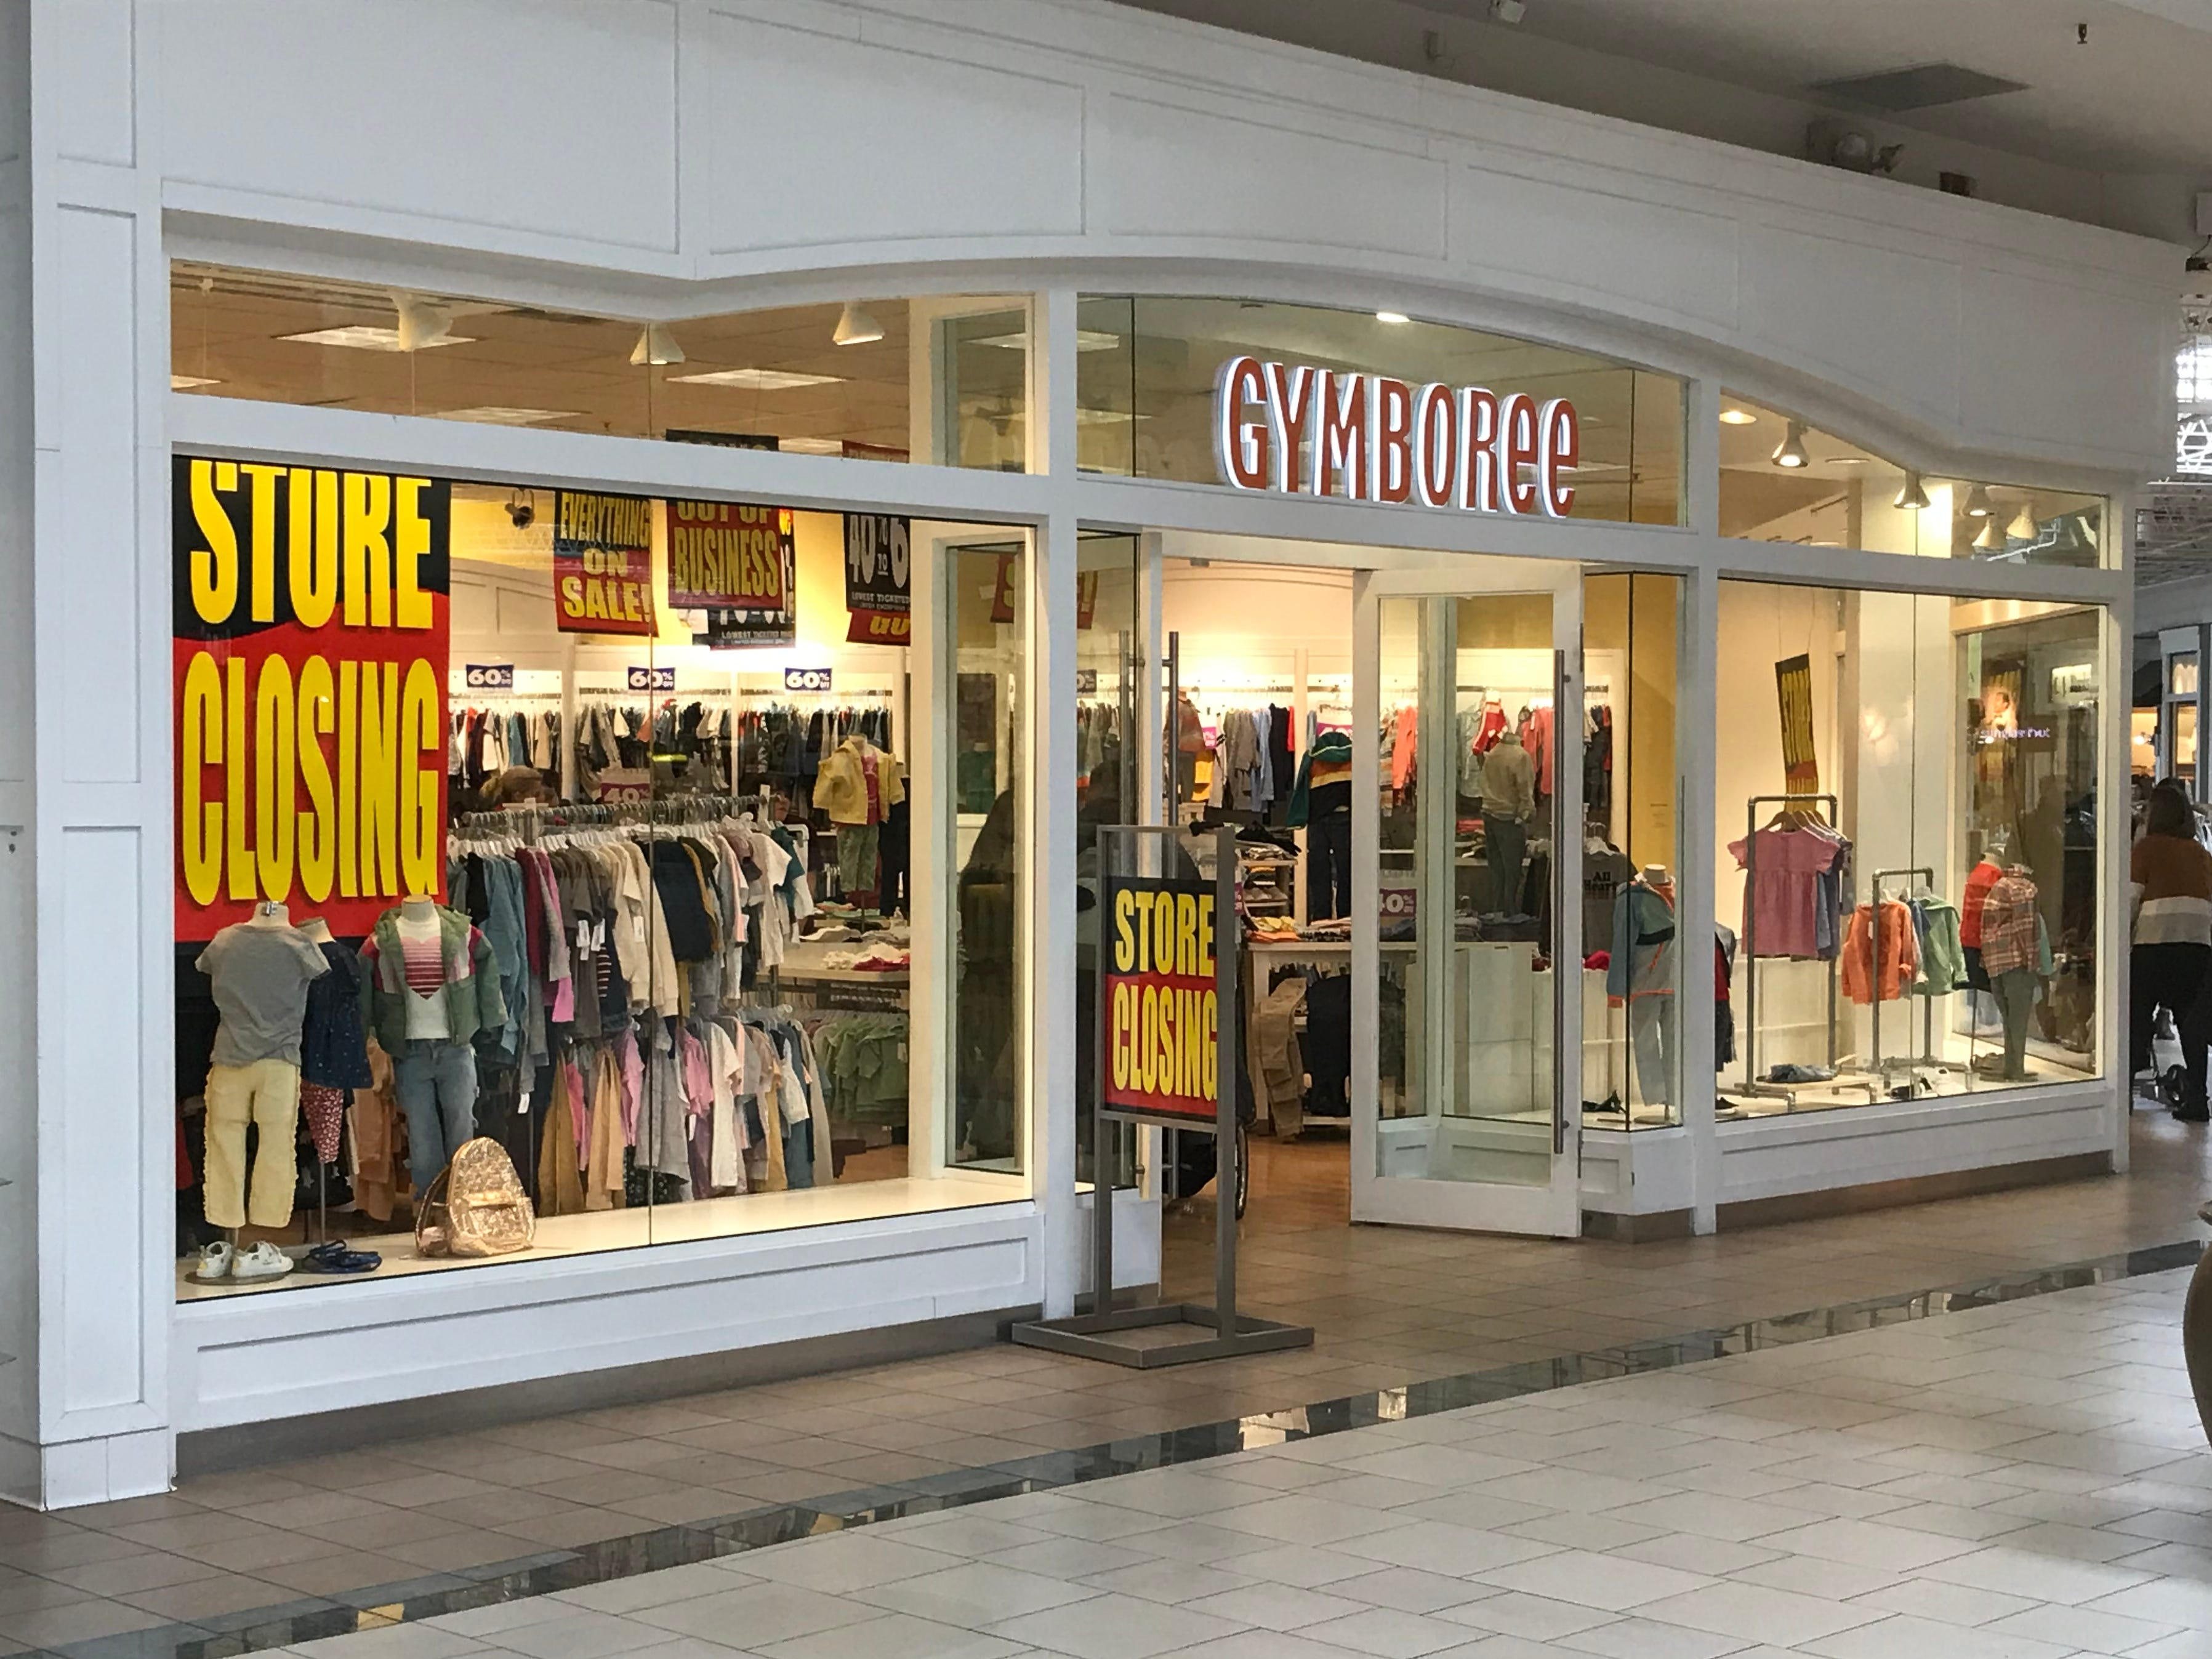 The Gymboree store in Bay Park Square will close due to the bankruptcy of its parent company Gymboree Group.